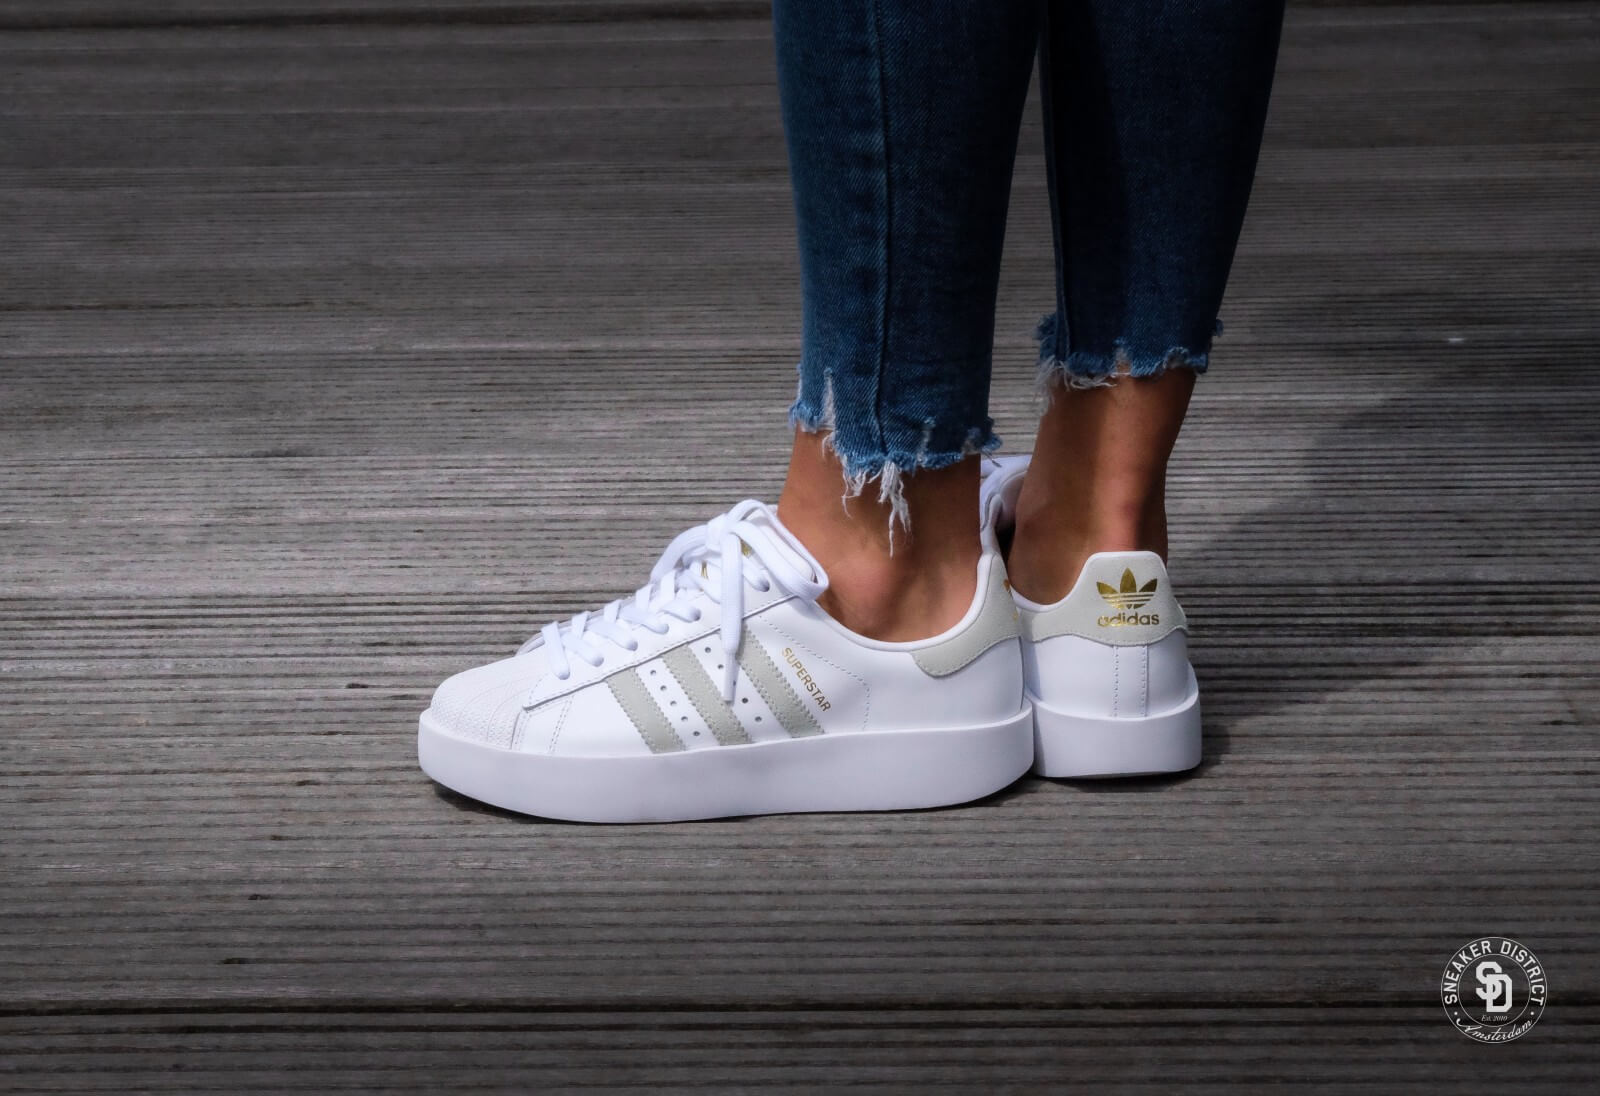 Adidas Superstar Bold Platform Footwear White Linen Green Gold Metallic